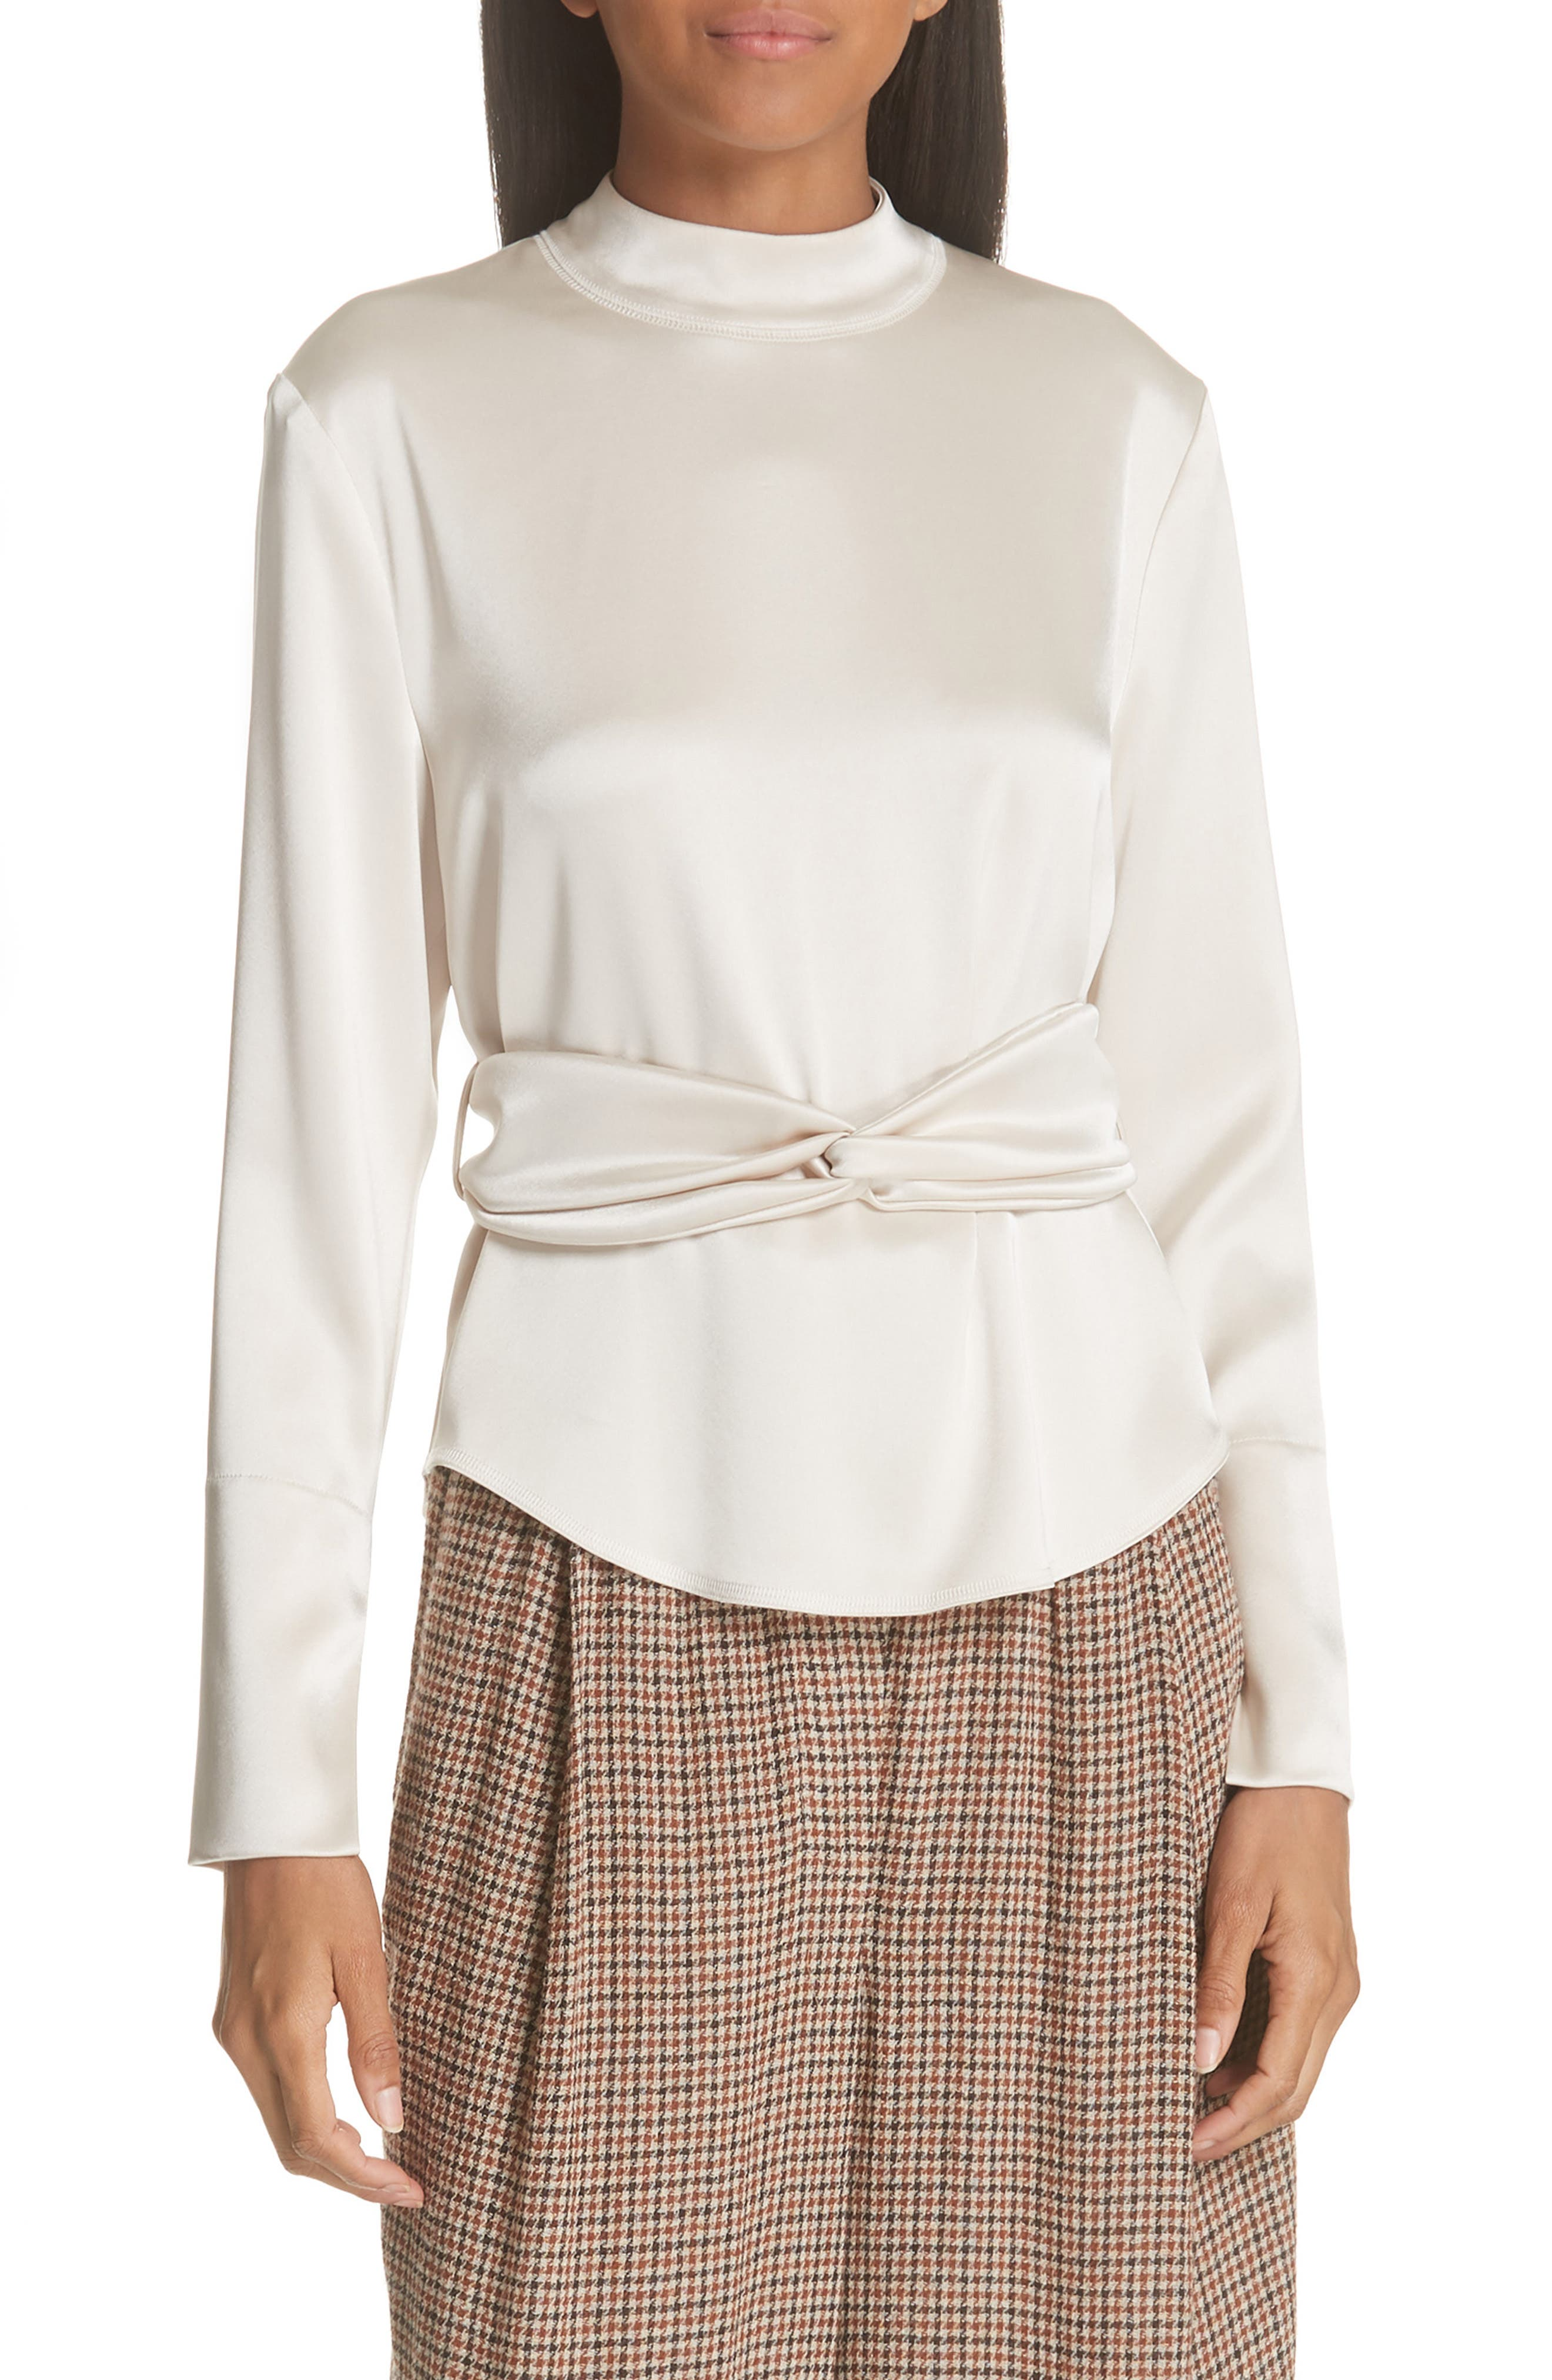 Almond Belted Satin Blouse,                             Main thumbnail 1, color,                             271